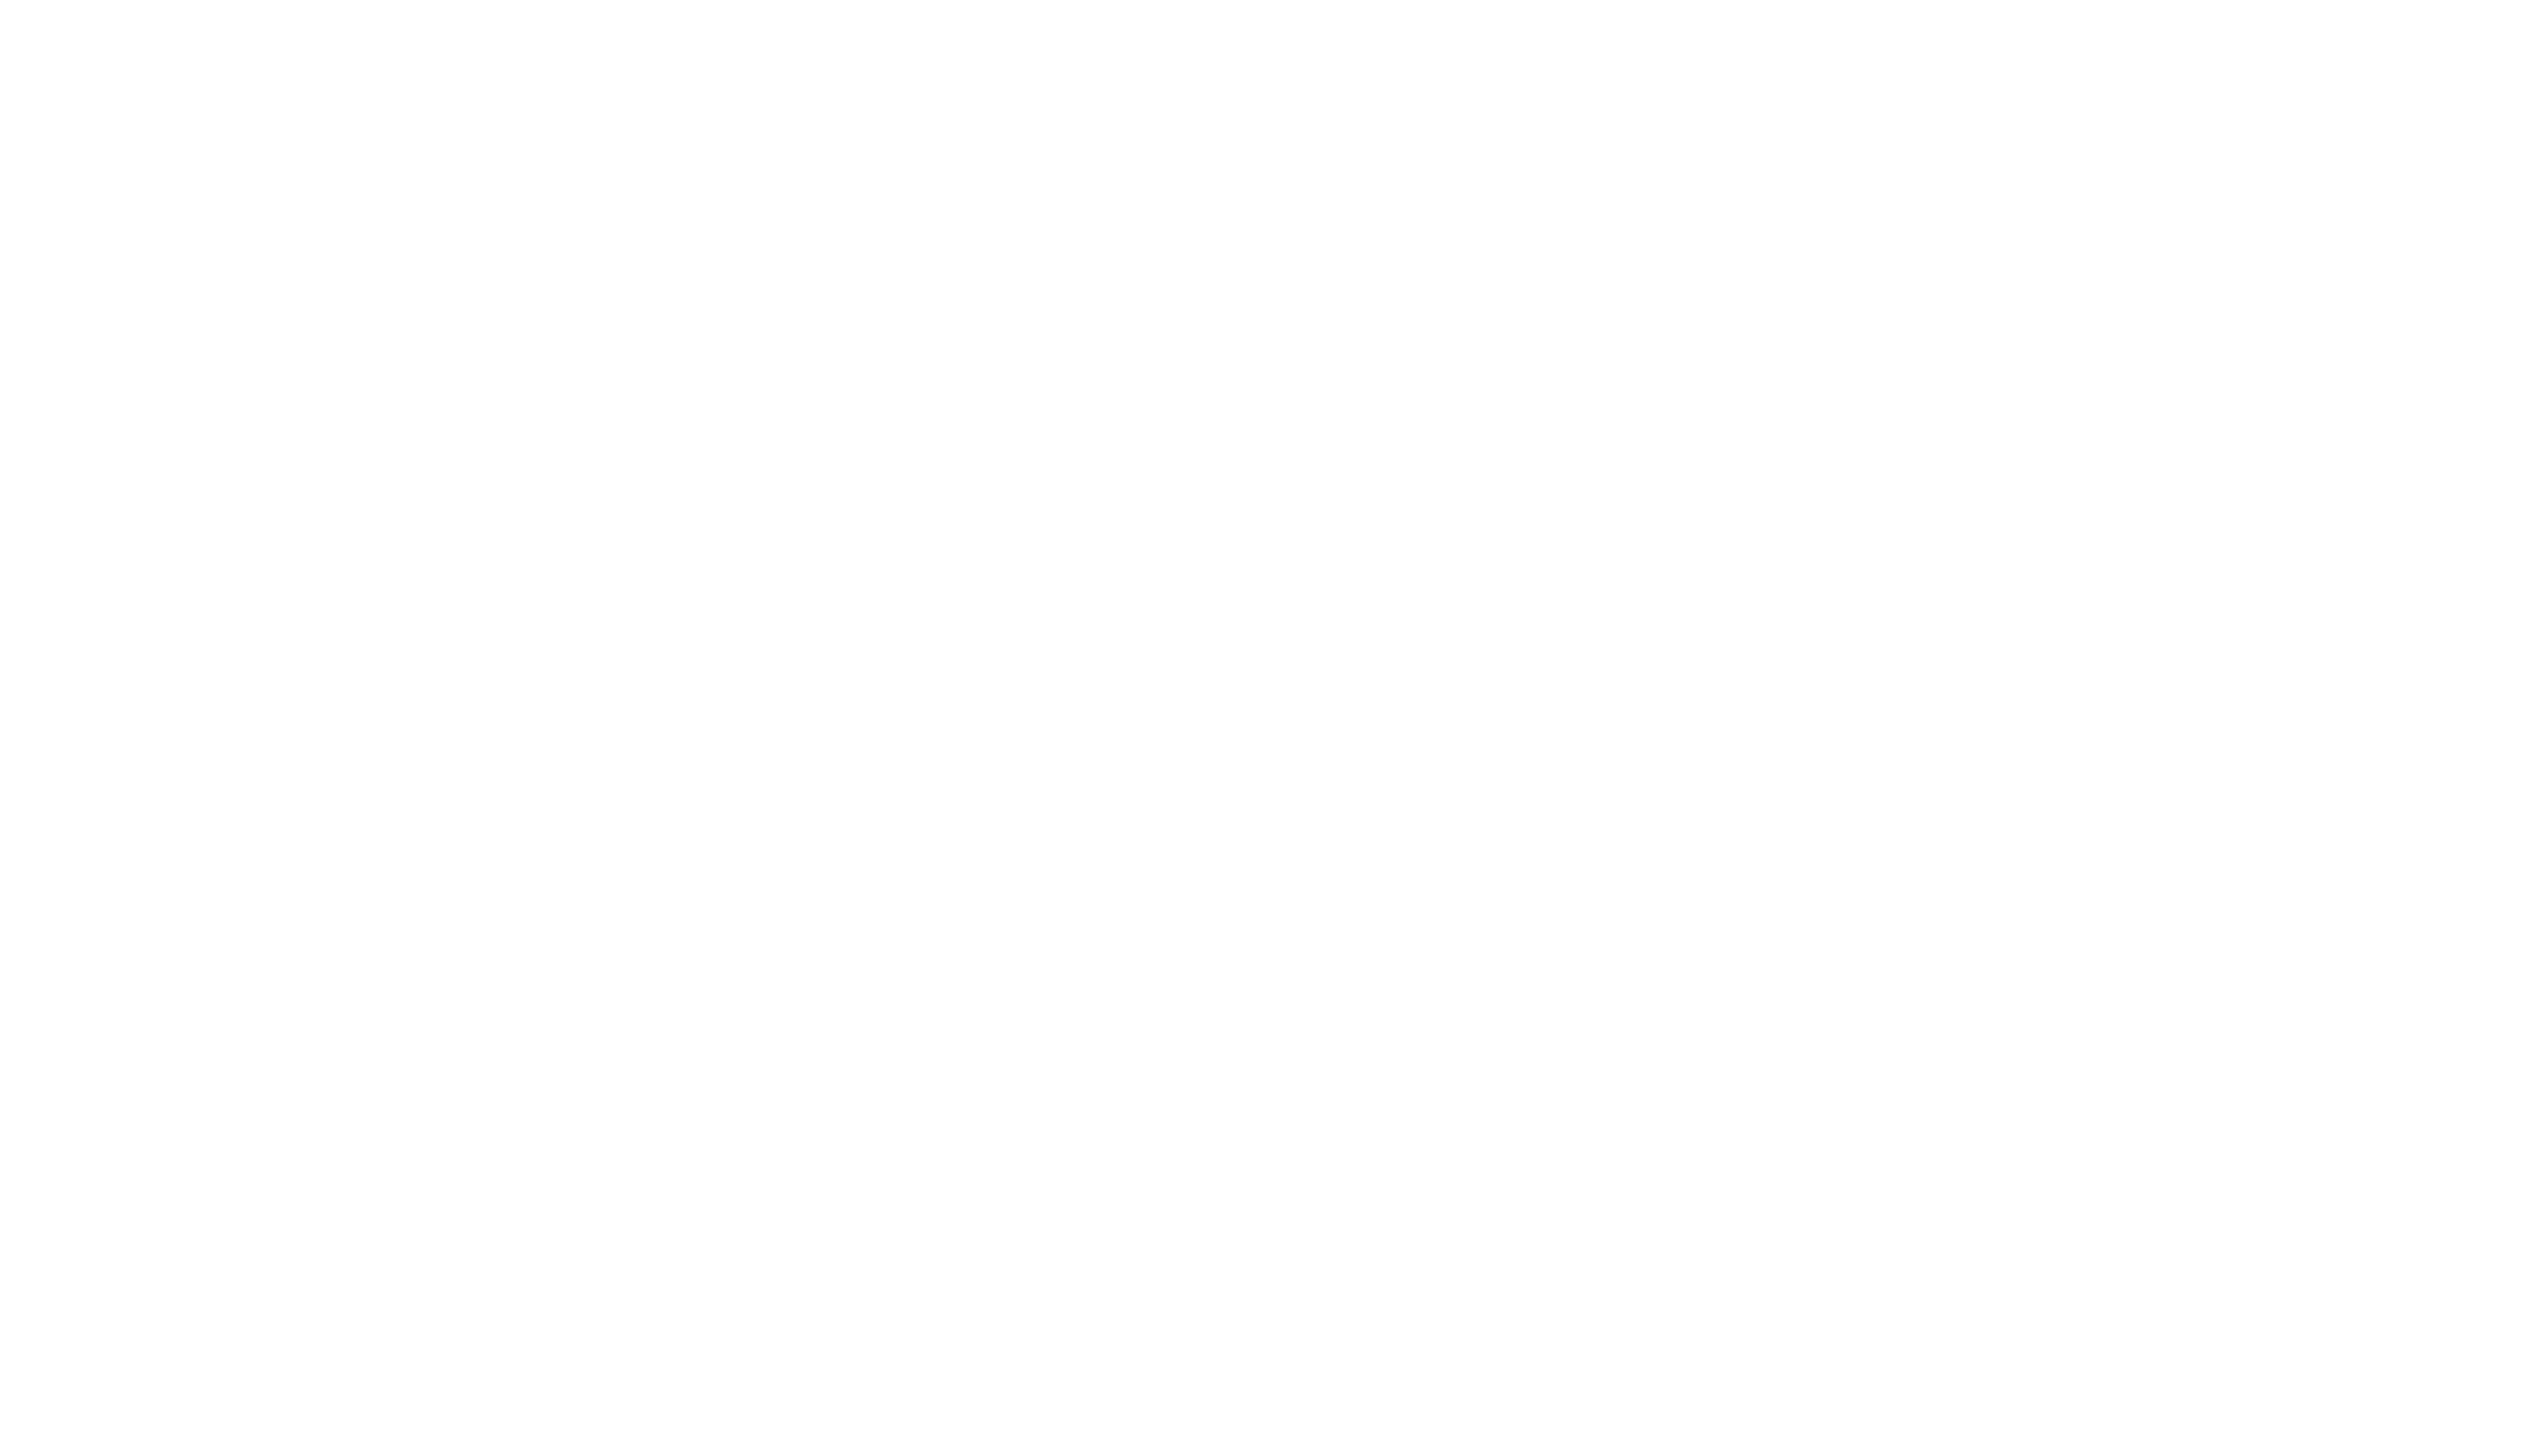 Jiffy - Skip the Dealershio Logo - White